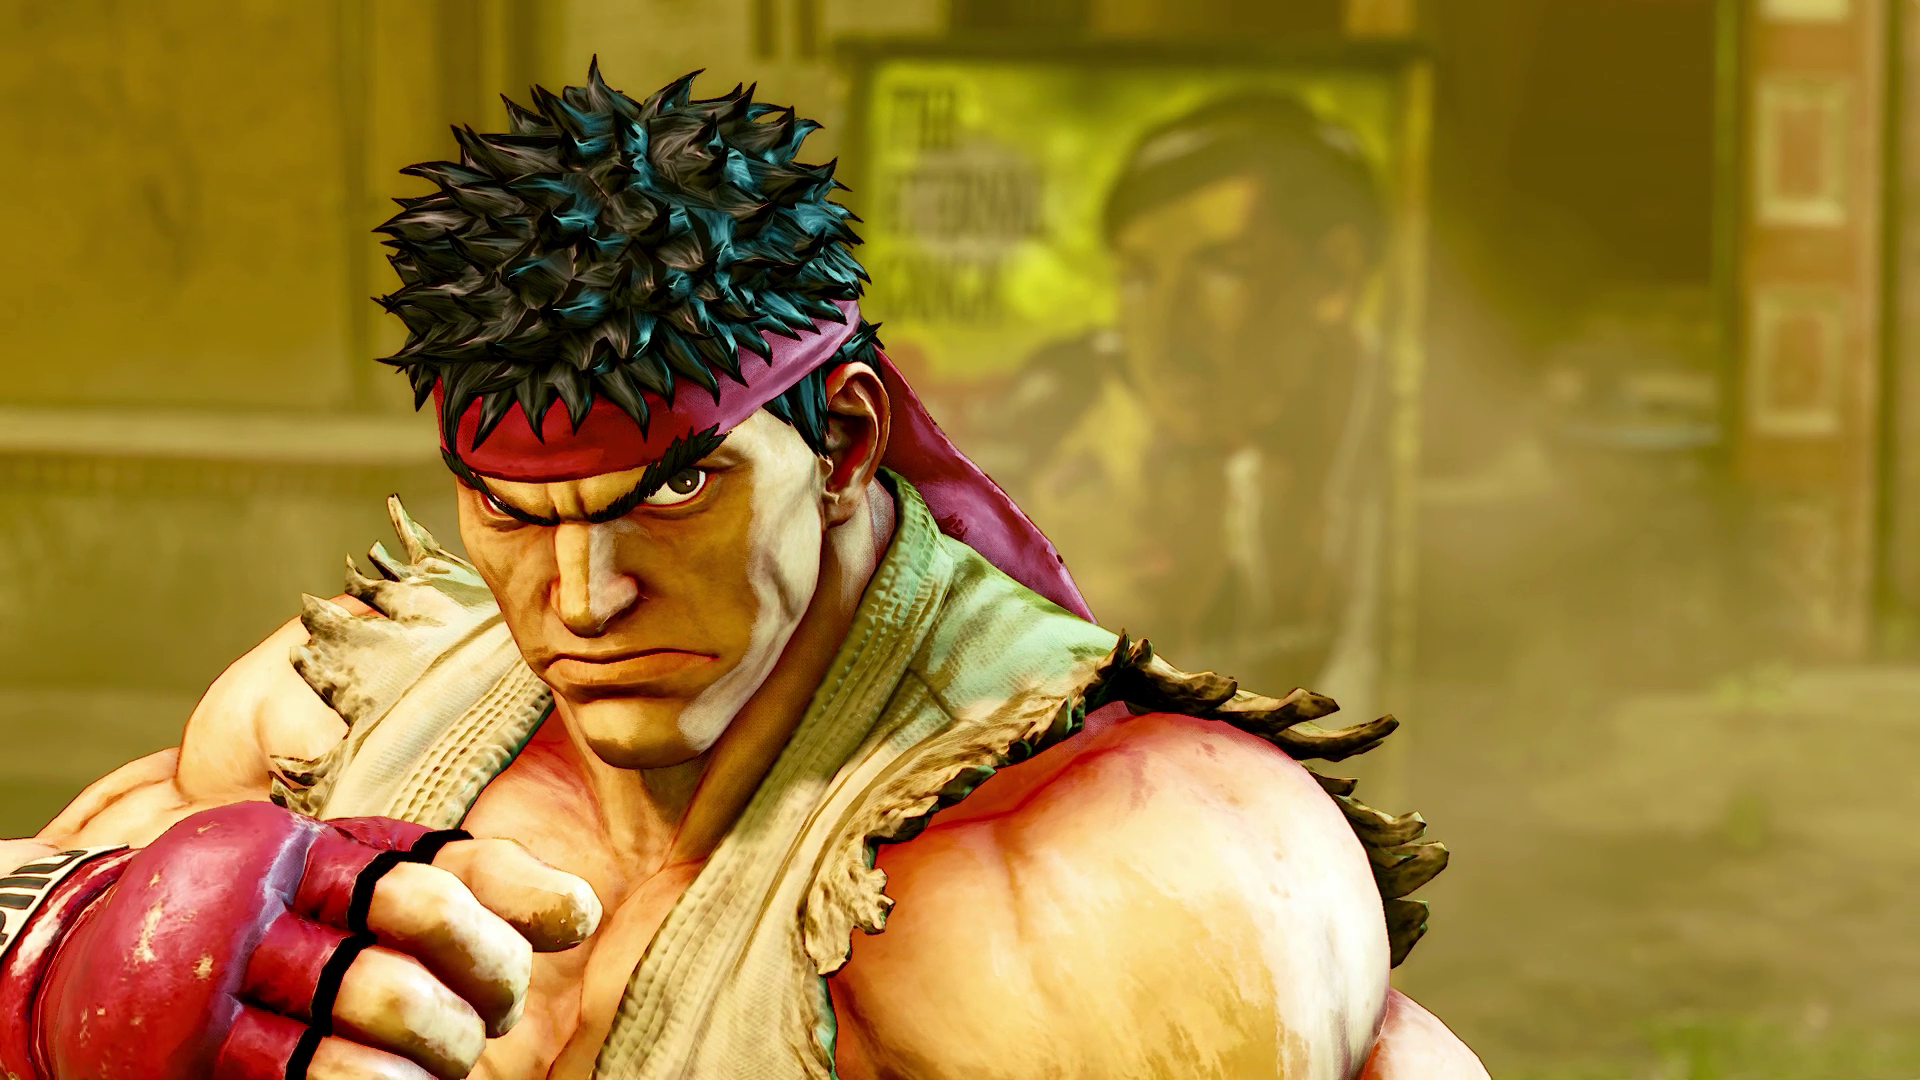 New Street Fighter 5 Trailer Arrives As Final Beta Begins